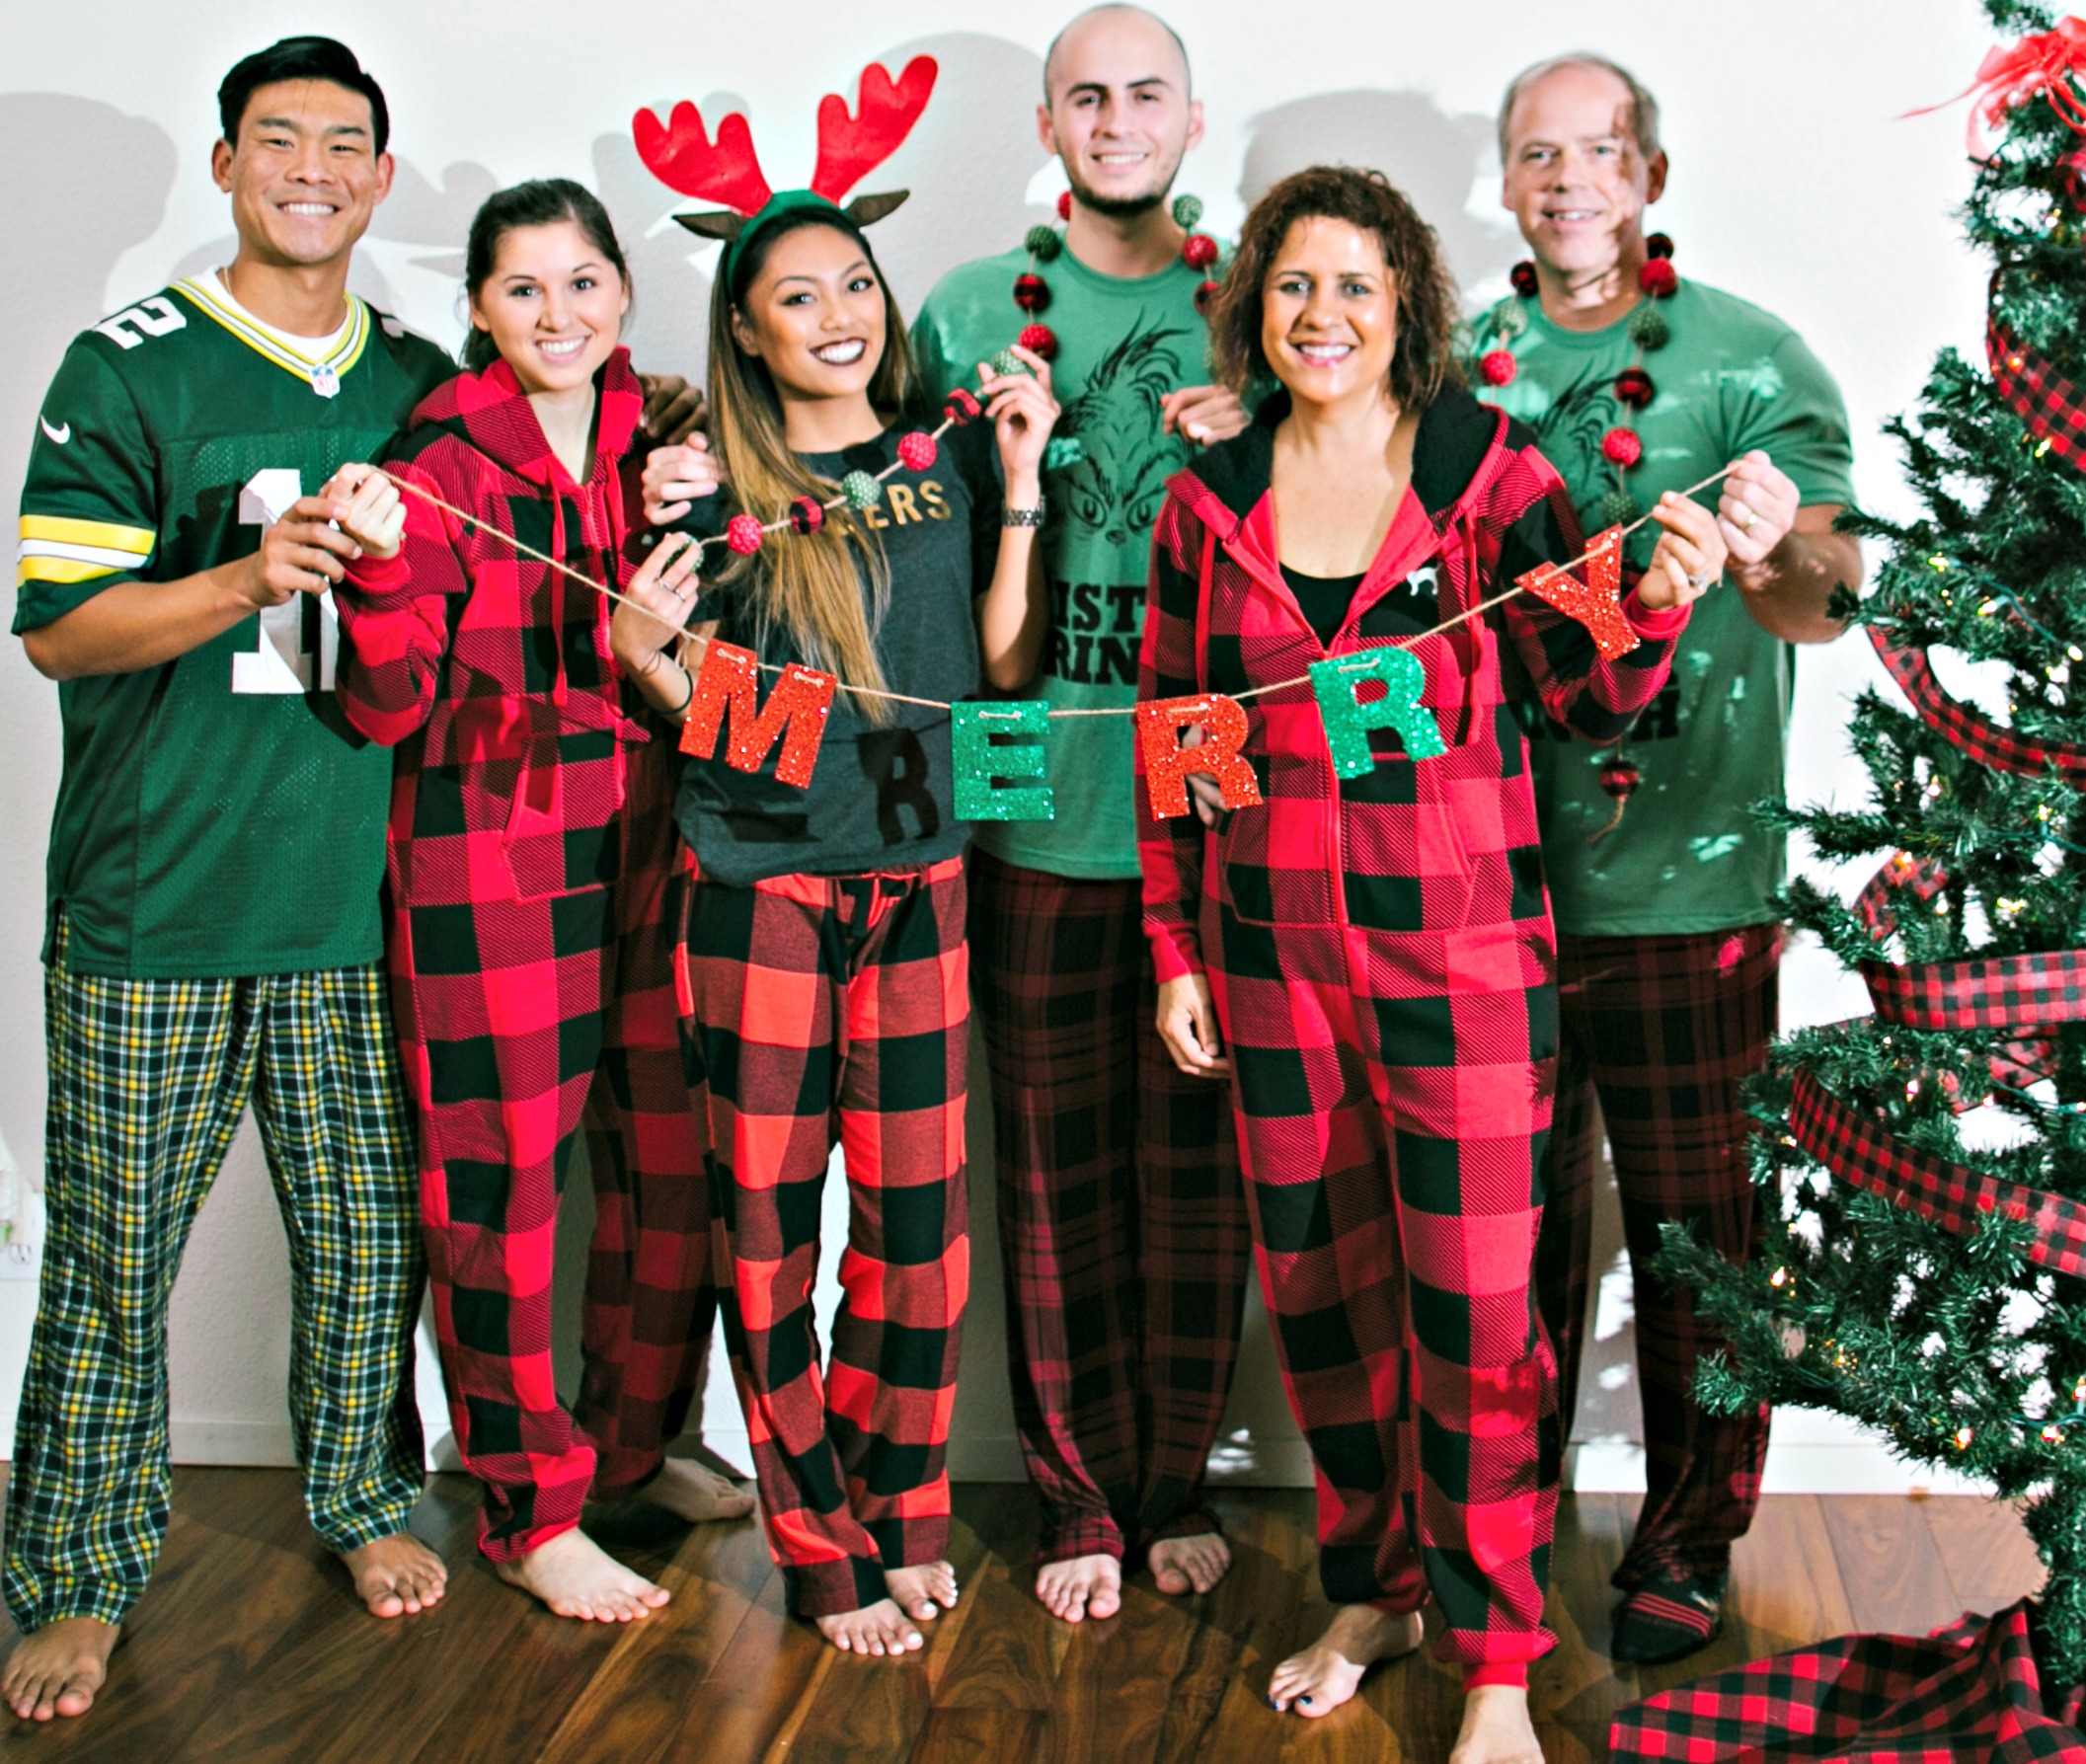 Surprise Pajama Party - www.stampedwithaloha.com